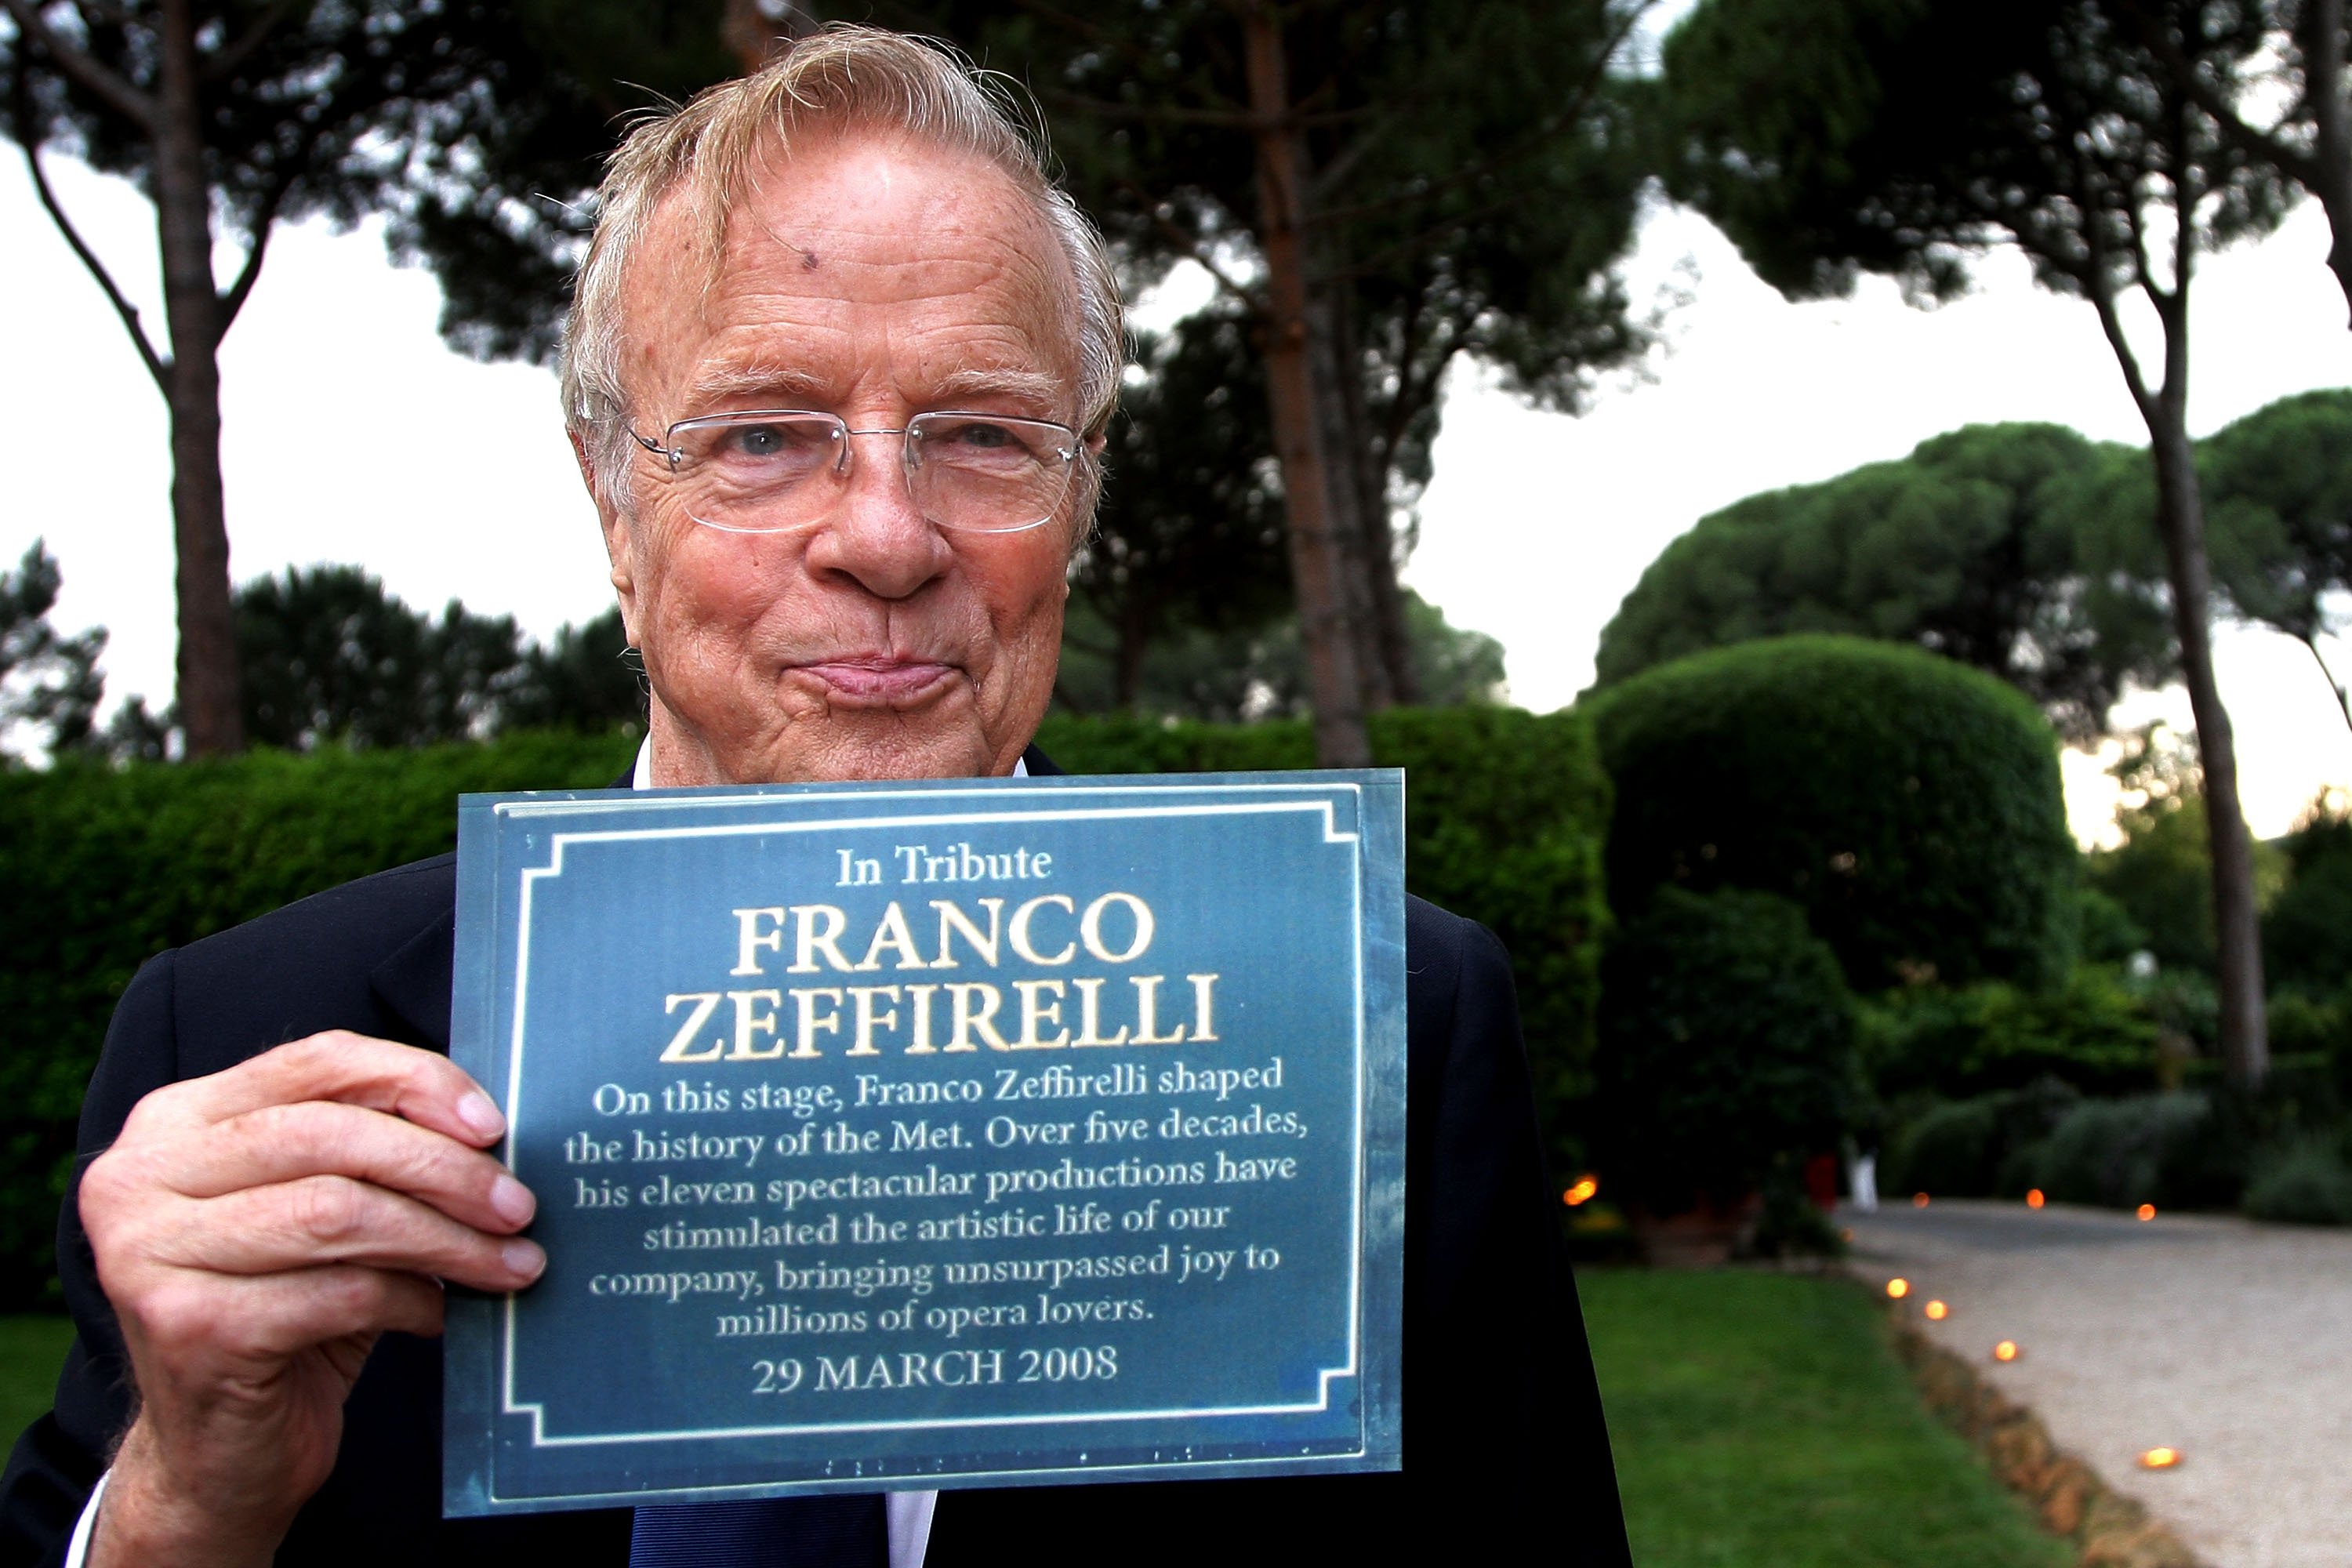 franco zeffirelli romeo and juliet song